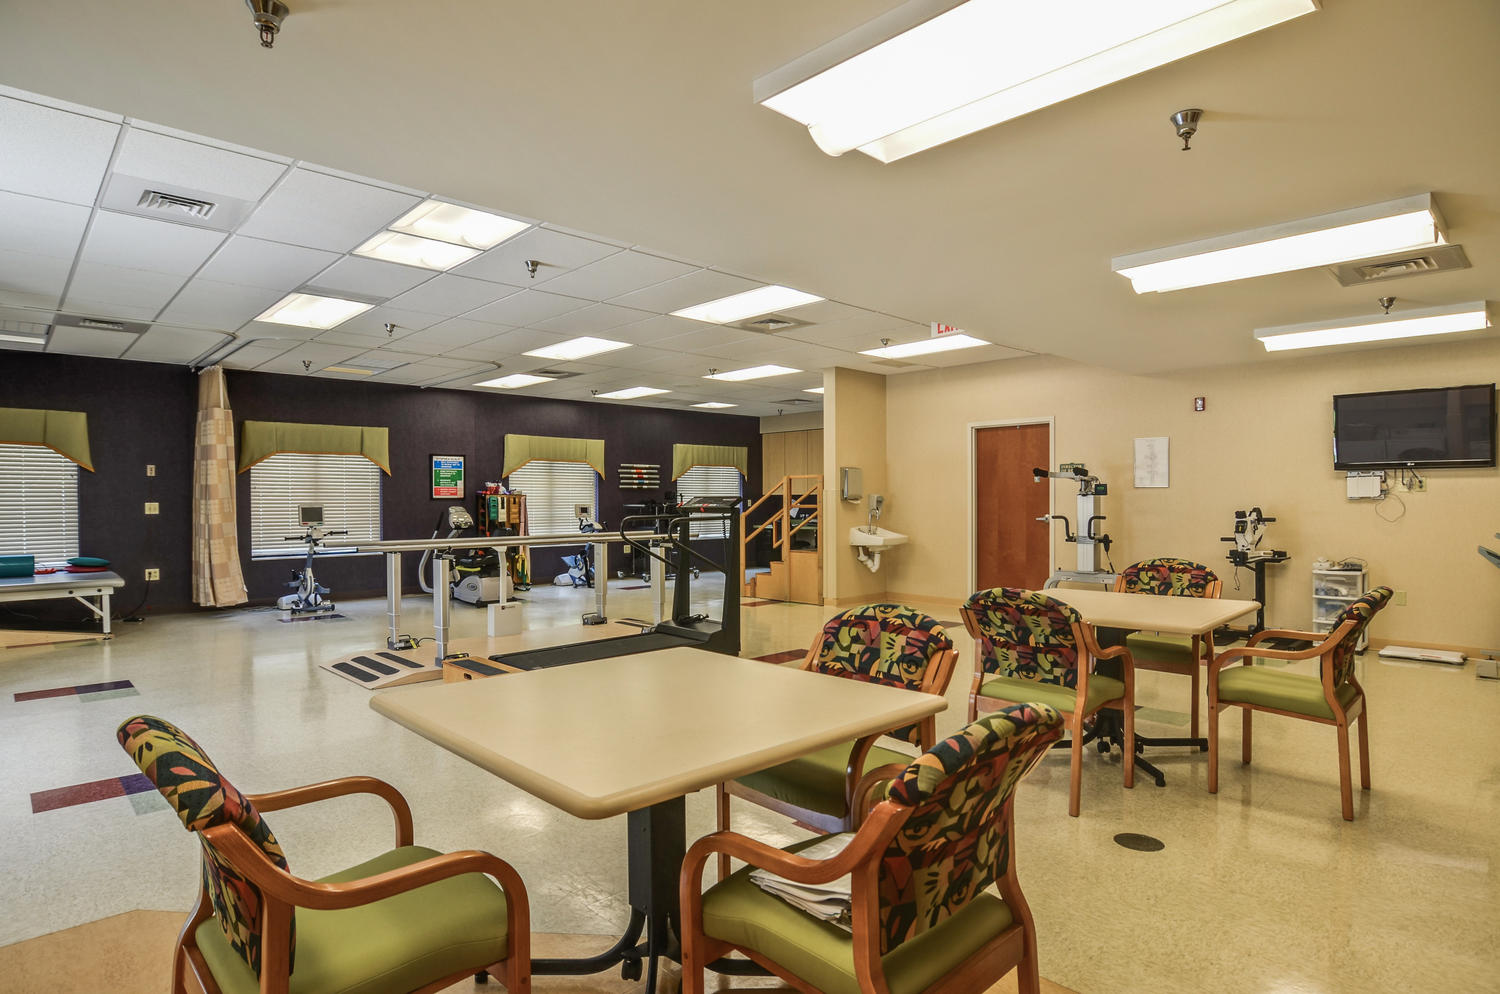 Stonerise Clarksburg Therapy and Rehabilitation room with equipment, seating areas and TV